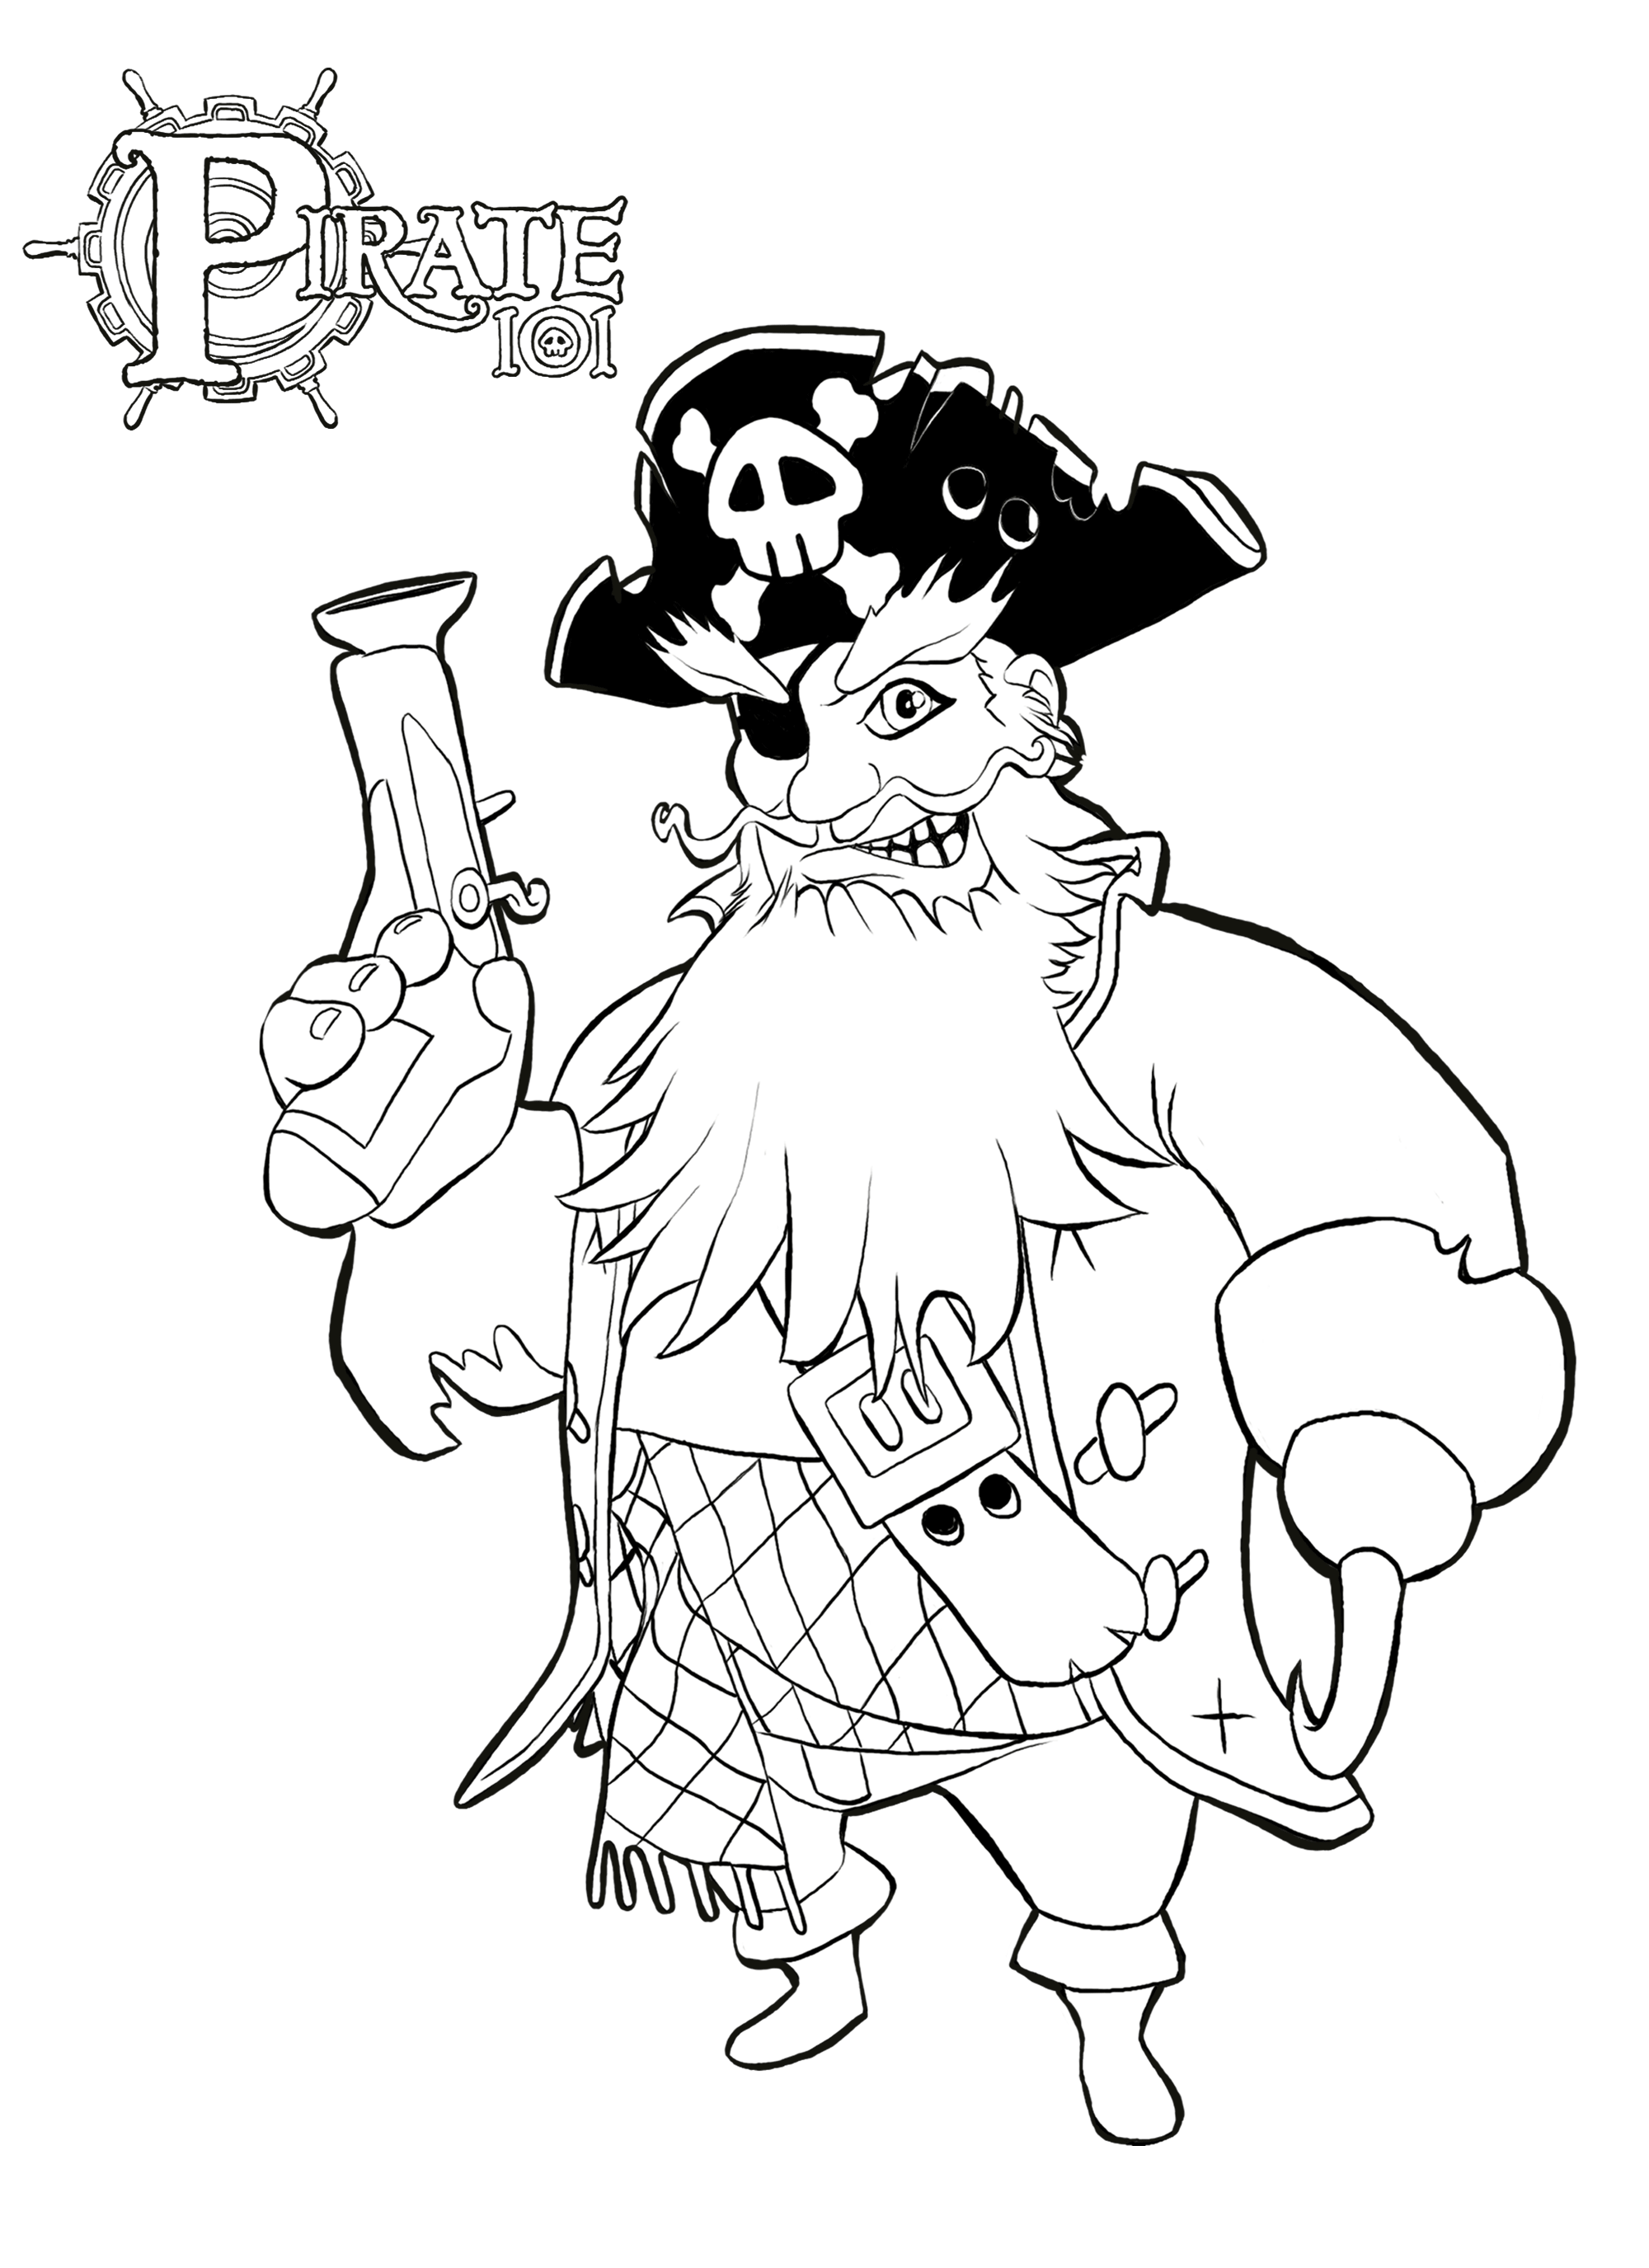 Adult Best Coloring Pages Pirates Gallery Images beauty pirate coloring pages pirate101 free online game download boochbeard page gallery images